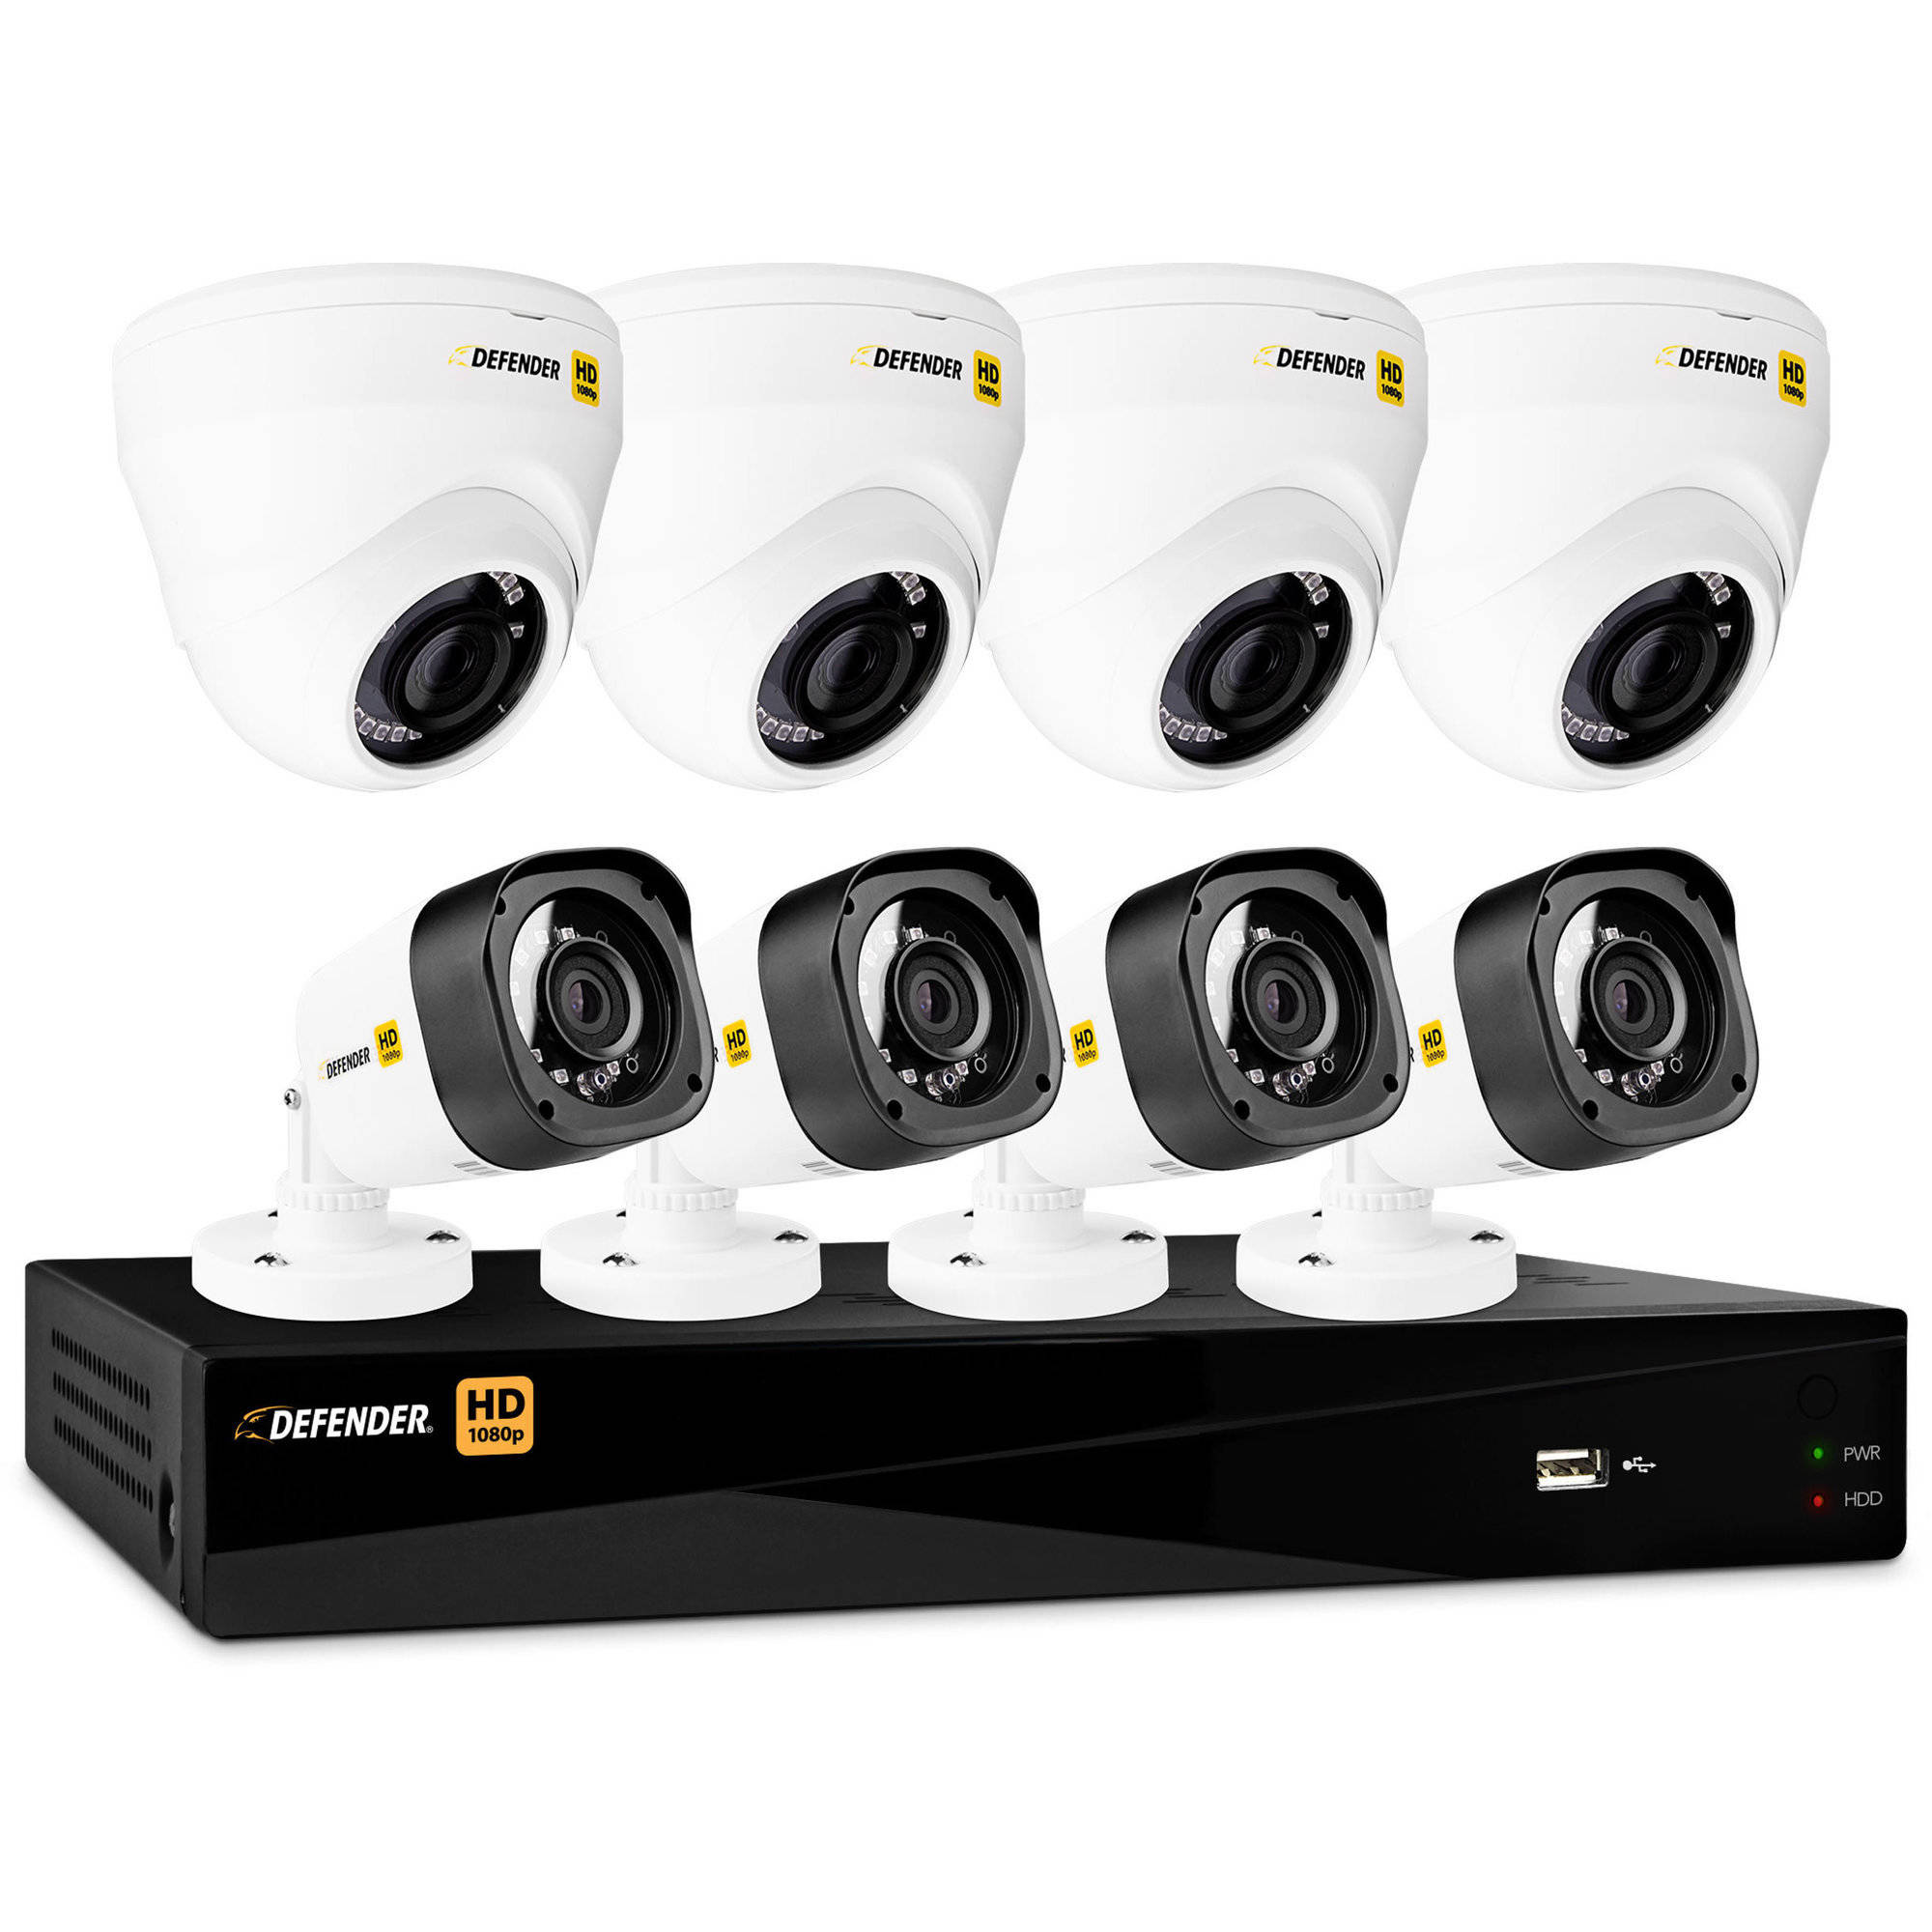 Defender HD 1080p 8-Channel 1TB DVR Security System with 4 Dome and 4 Bullet Cameras